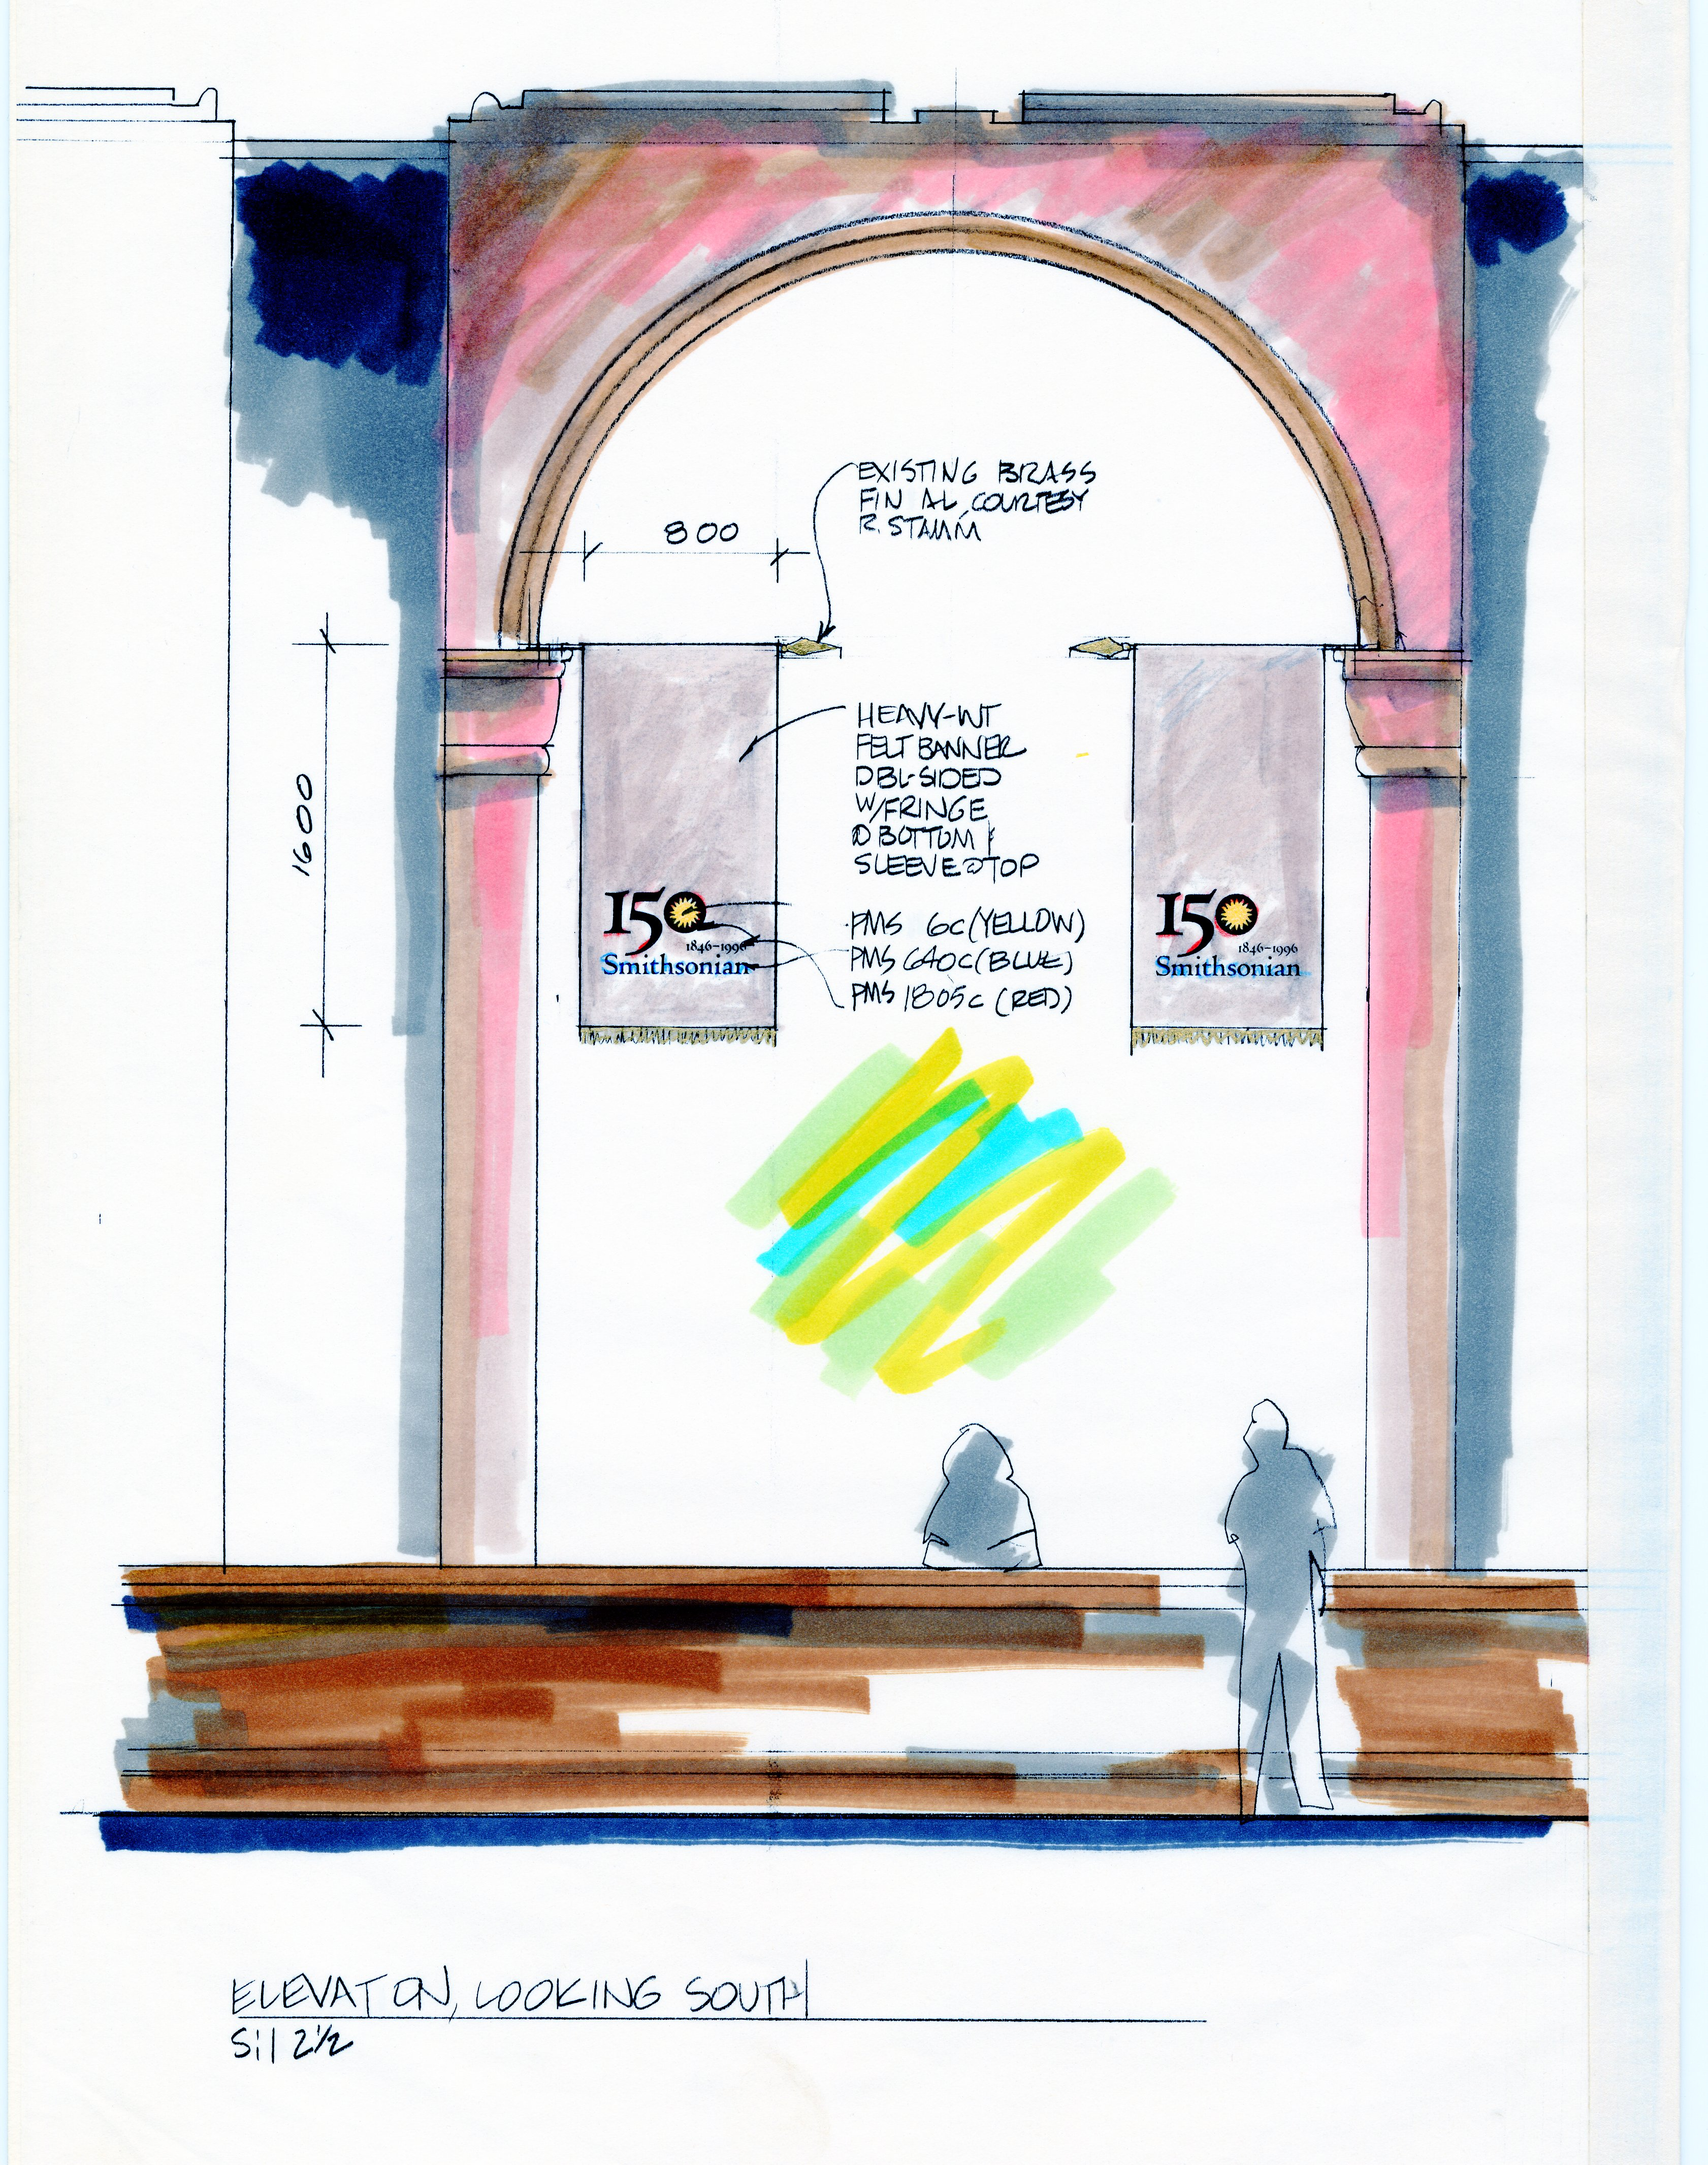 Elevation drawing - 150th Anniversary flags inside the Smithsonian Institution Building, by Mary Dil